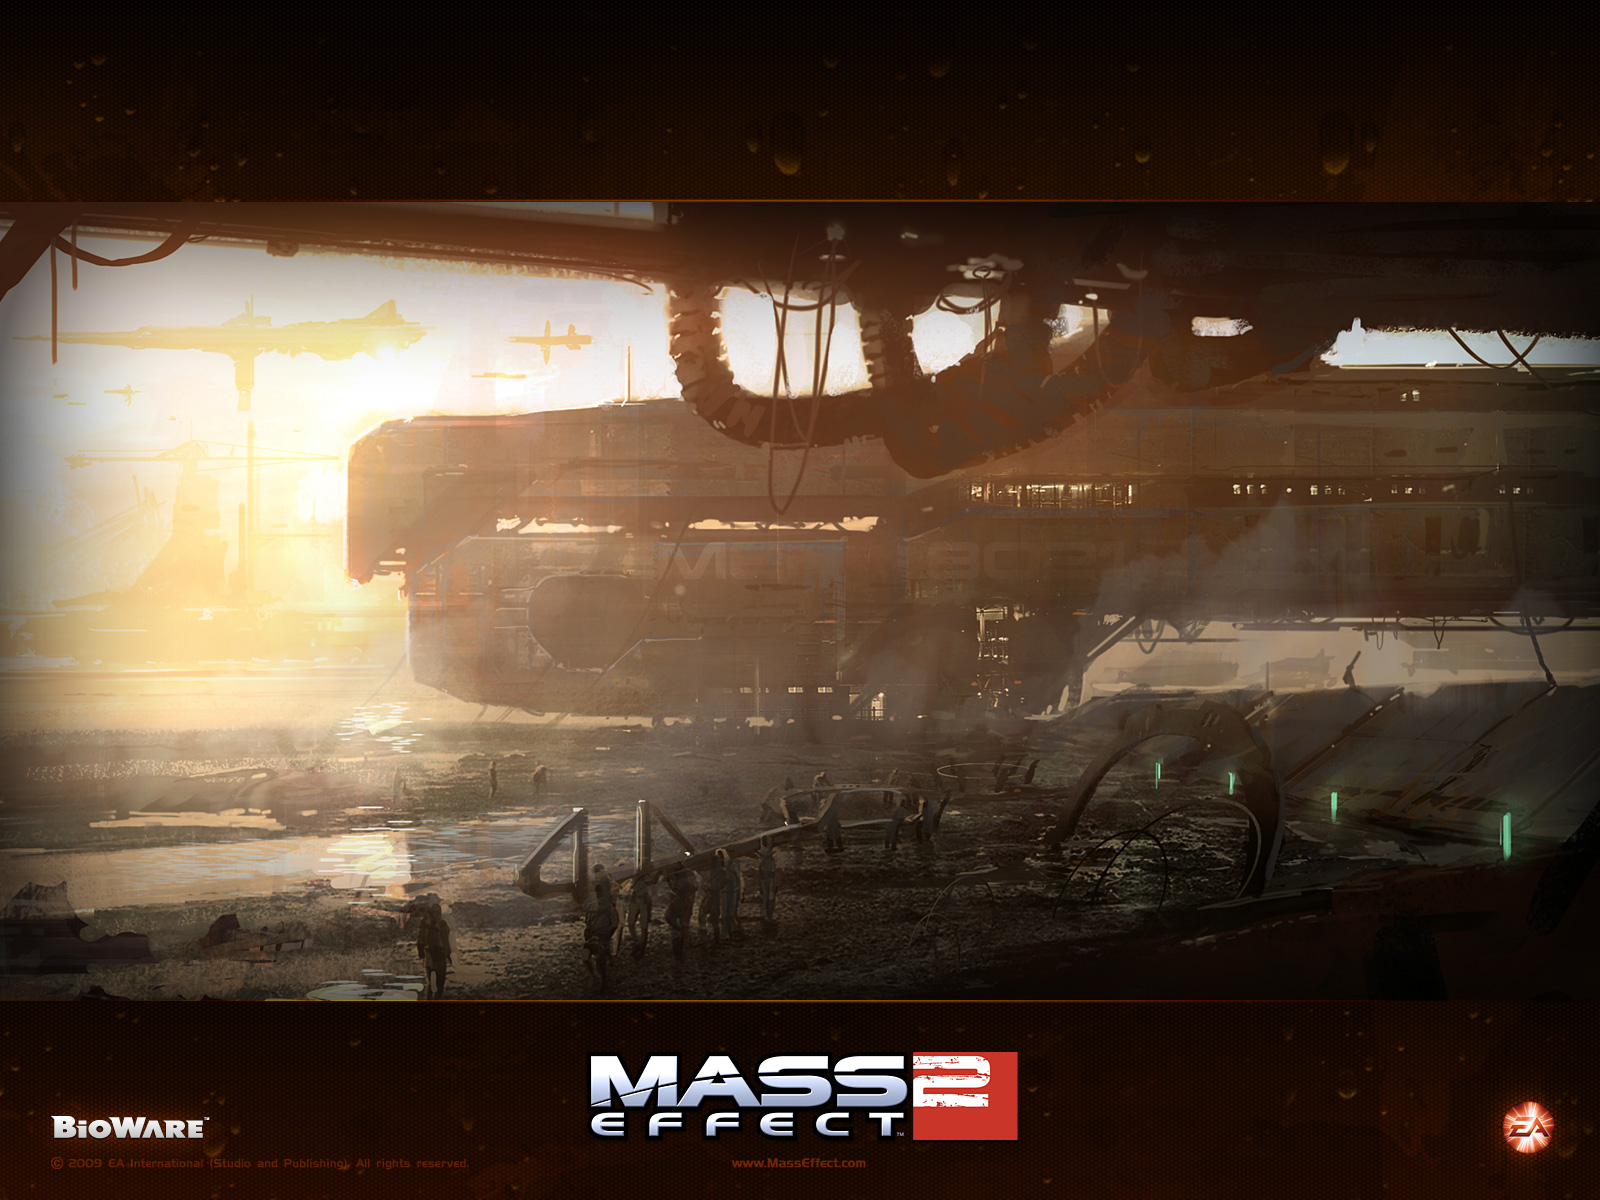 mass effect epic black hole - photo #47